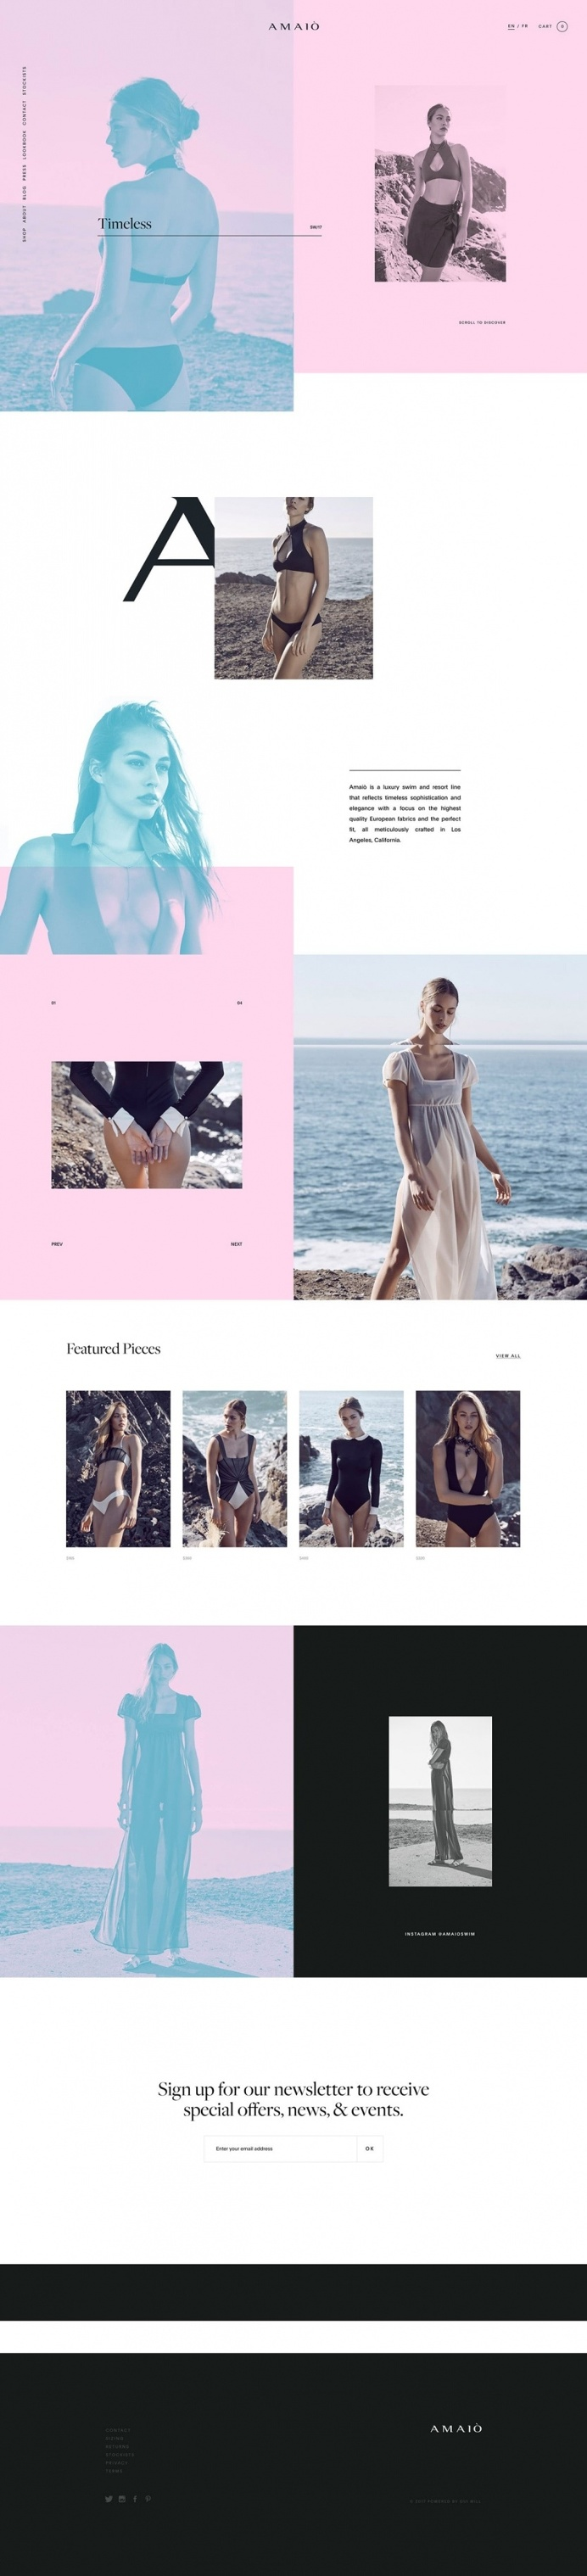 AMAIO - Mindsparkle Mag - AMAIÃ' is a luxury swim and resort label reflecting a sense of iconic sophistication and elegance. Their website i